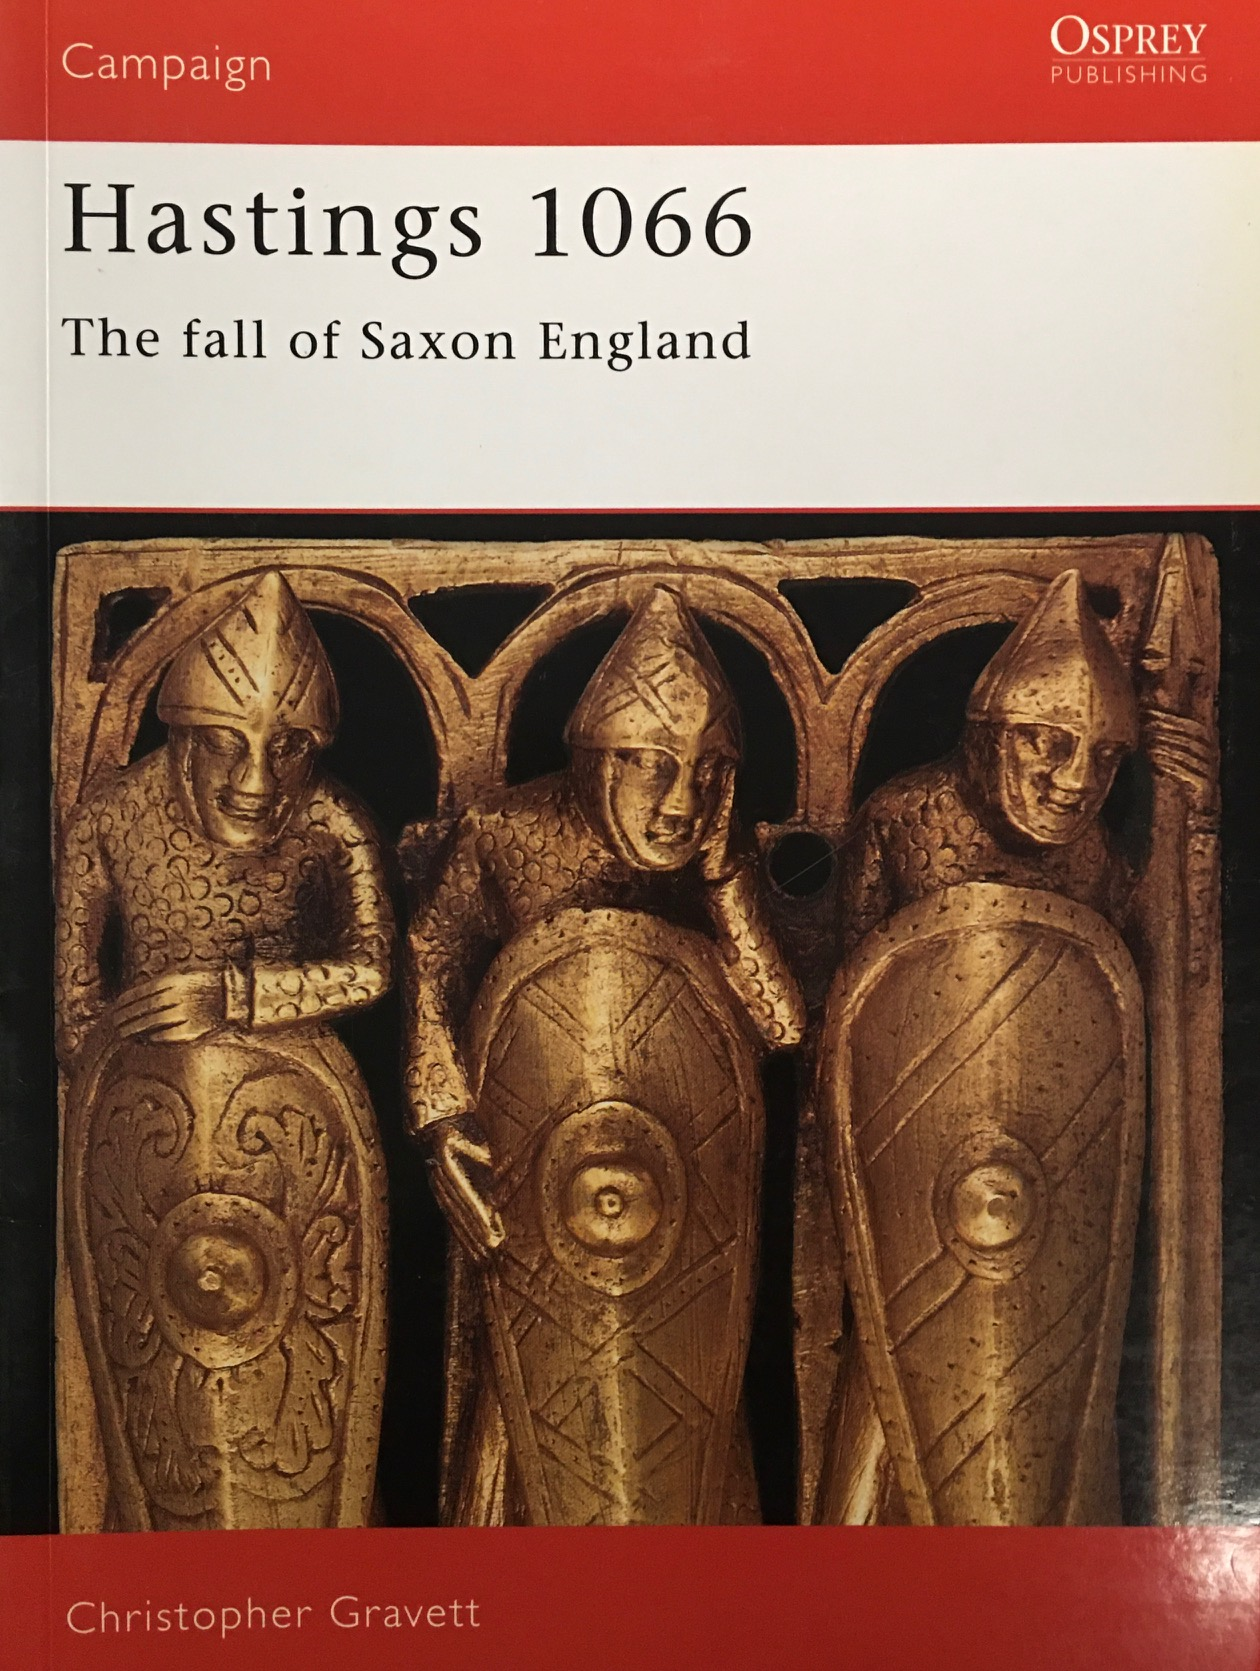 Image for Hastings 1066: The Fall of Saxon England (Campaign)